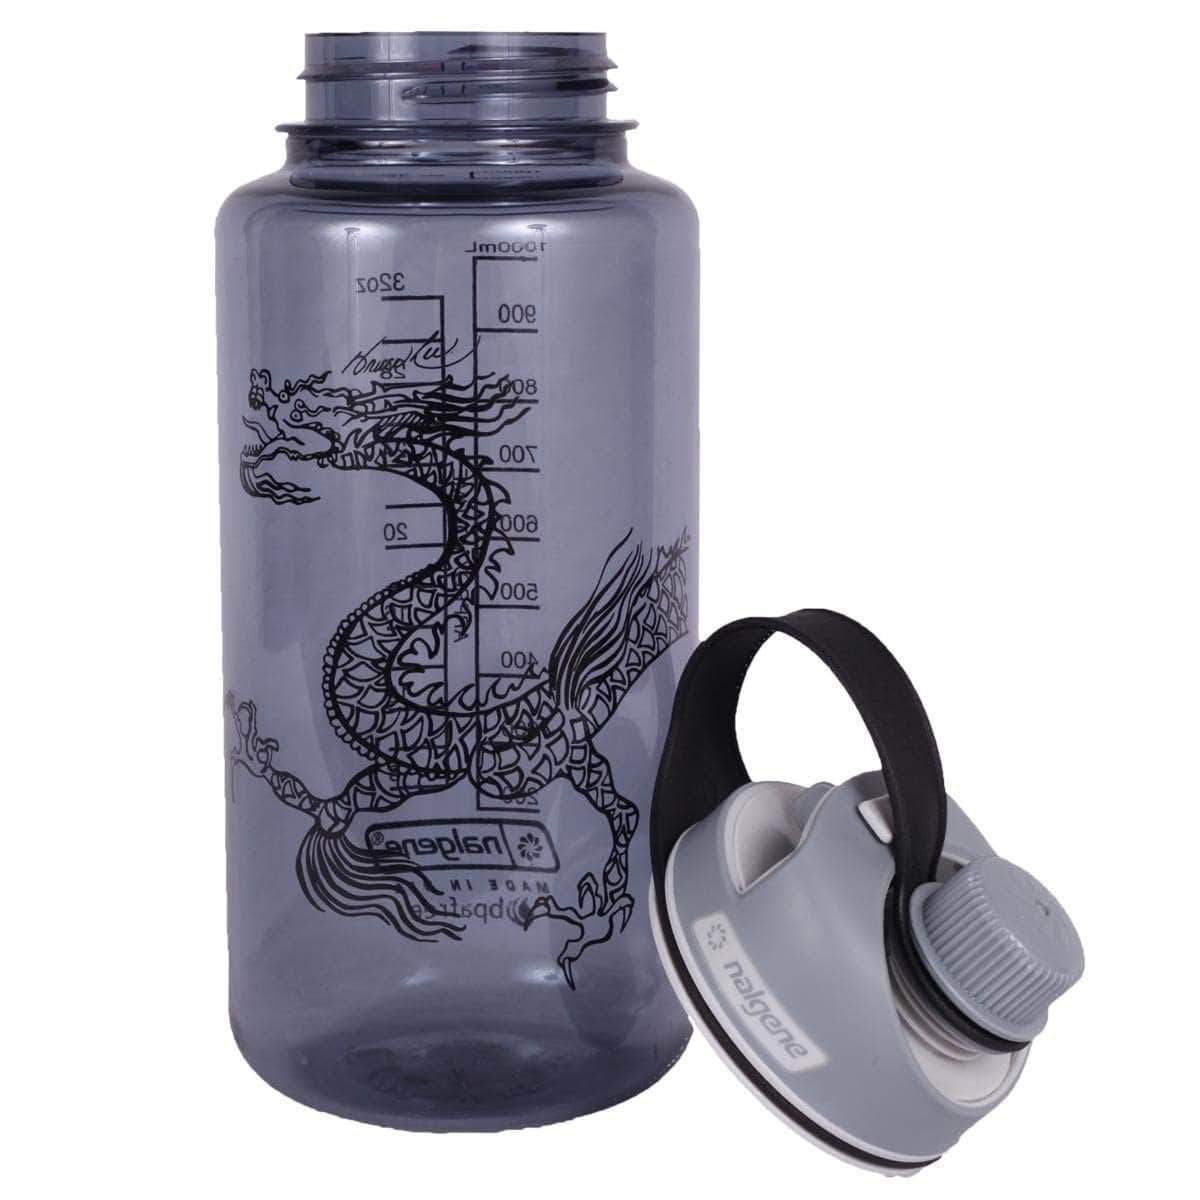 Lee Little Dragon 32oz. Nalgene Bottle